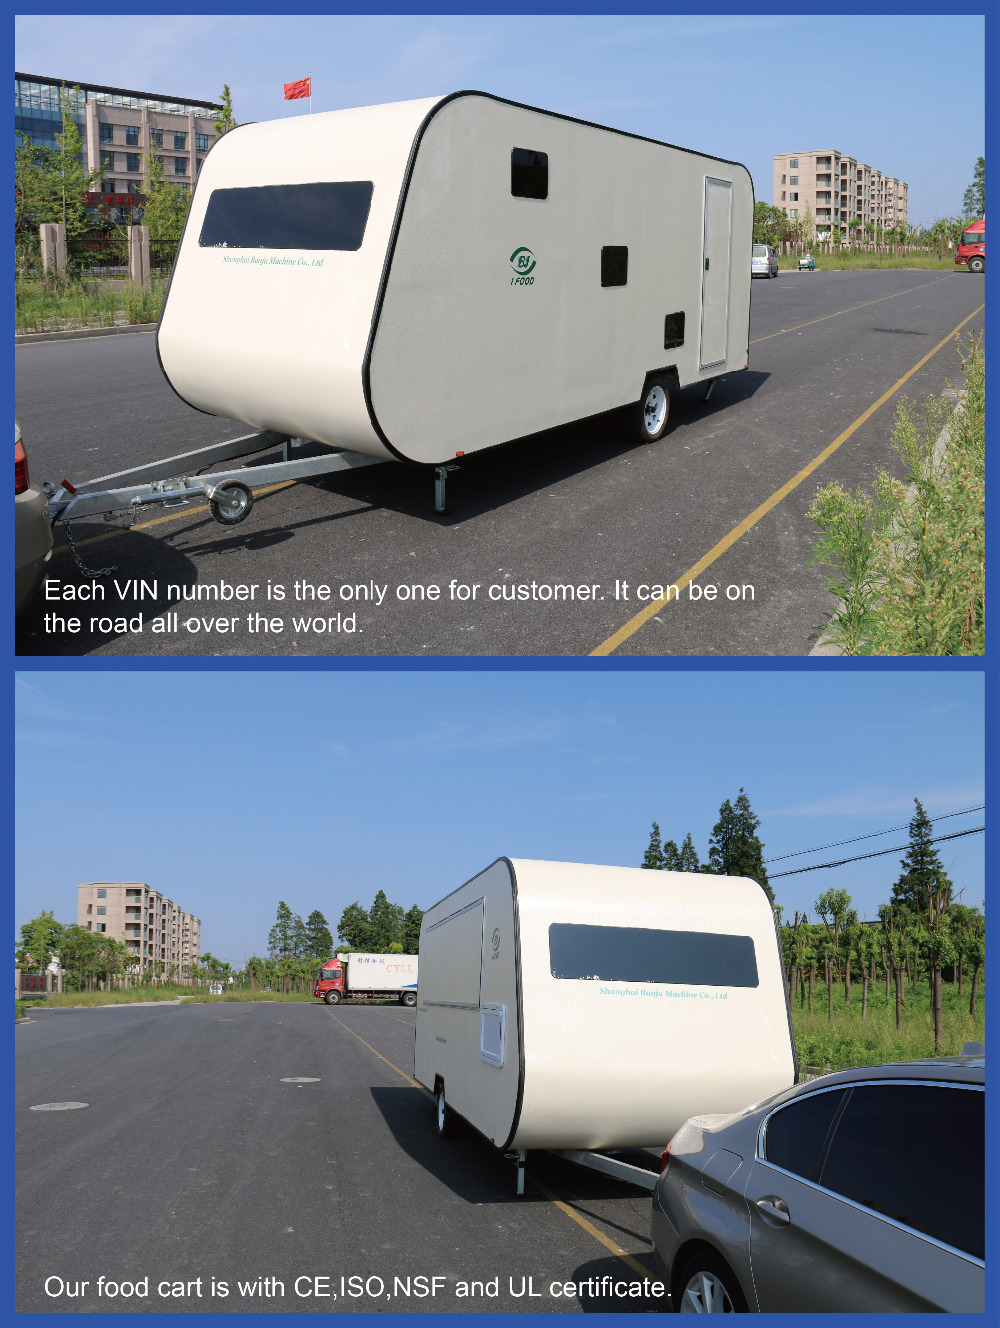 2016 hot sales best quality model mobile food carts for sale mobile food cart with wheels food cart